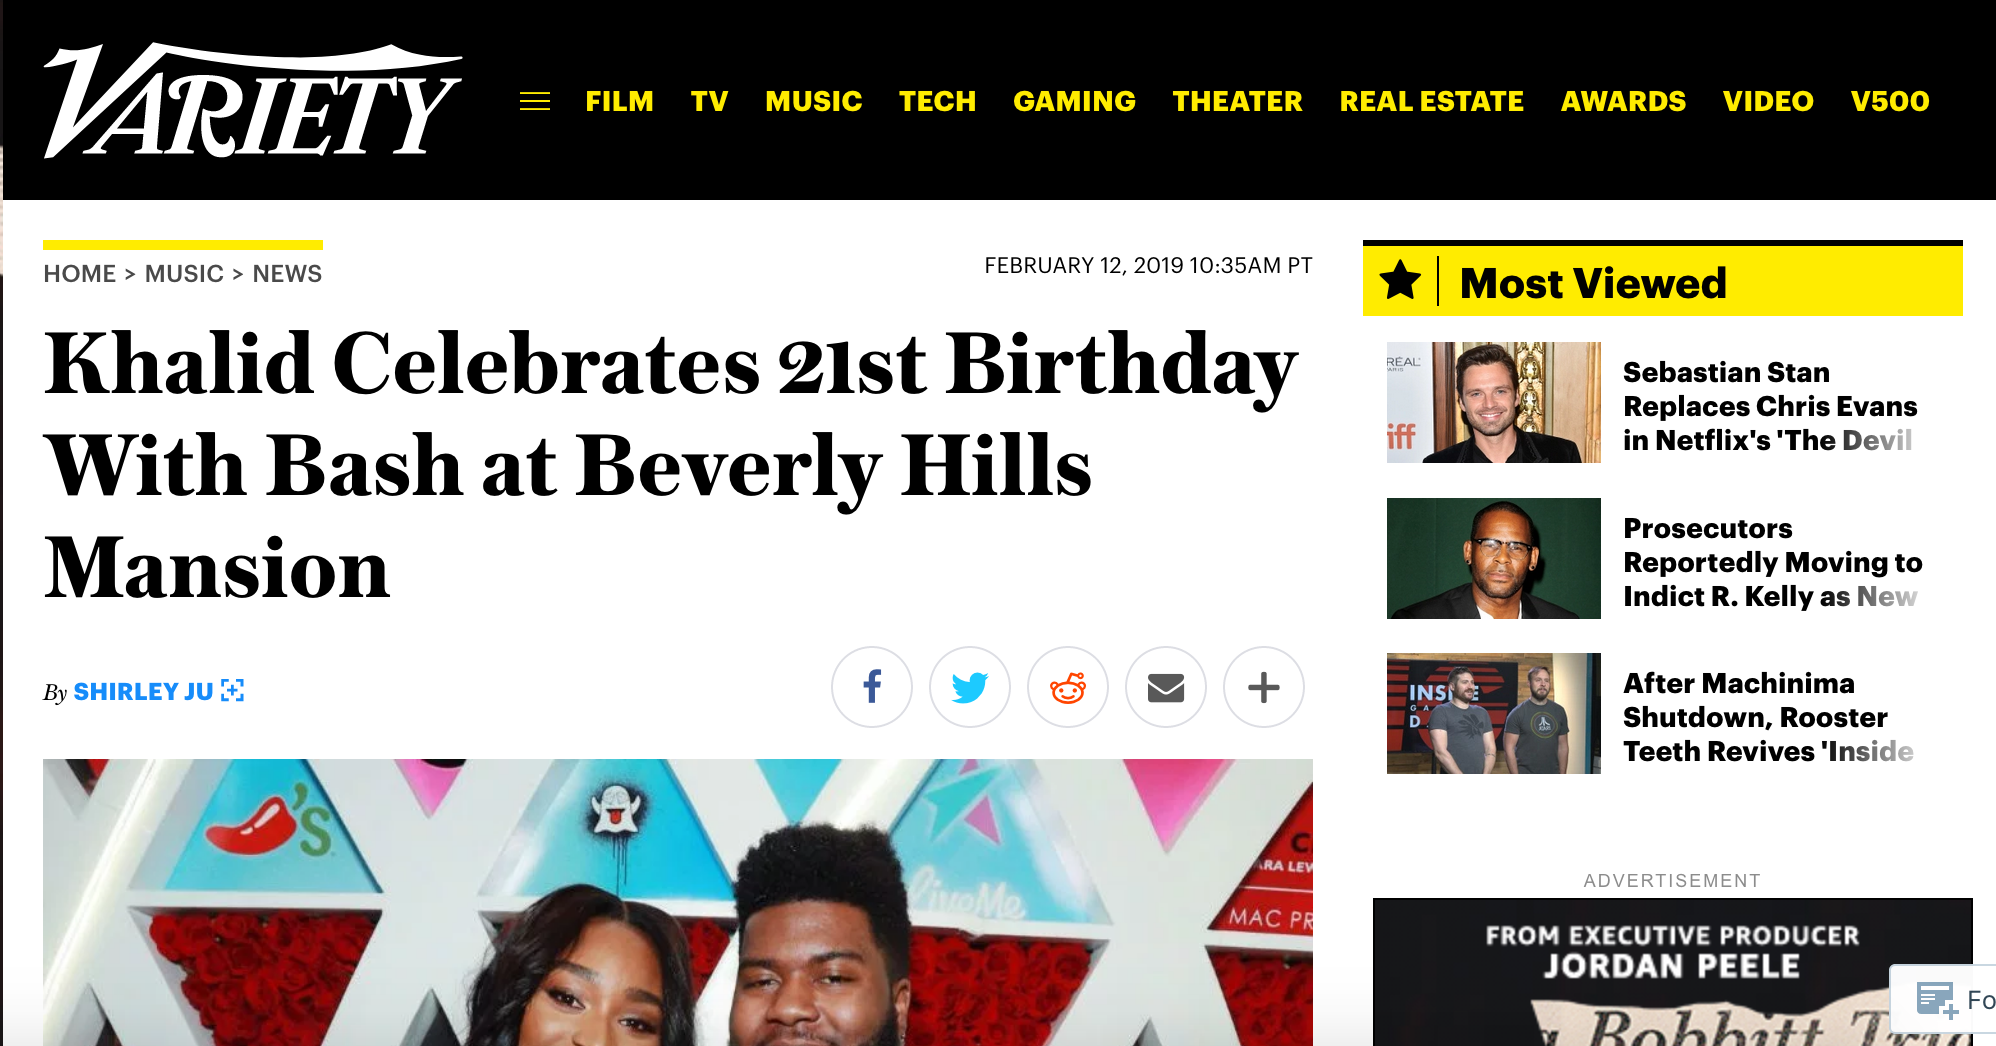 variety: B-Hen spins Khalid's 21st birthday bash (FEATURE) -